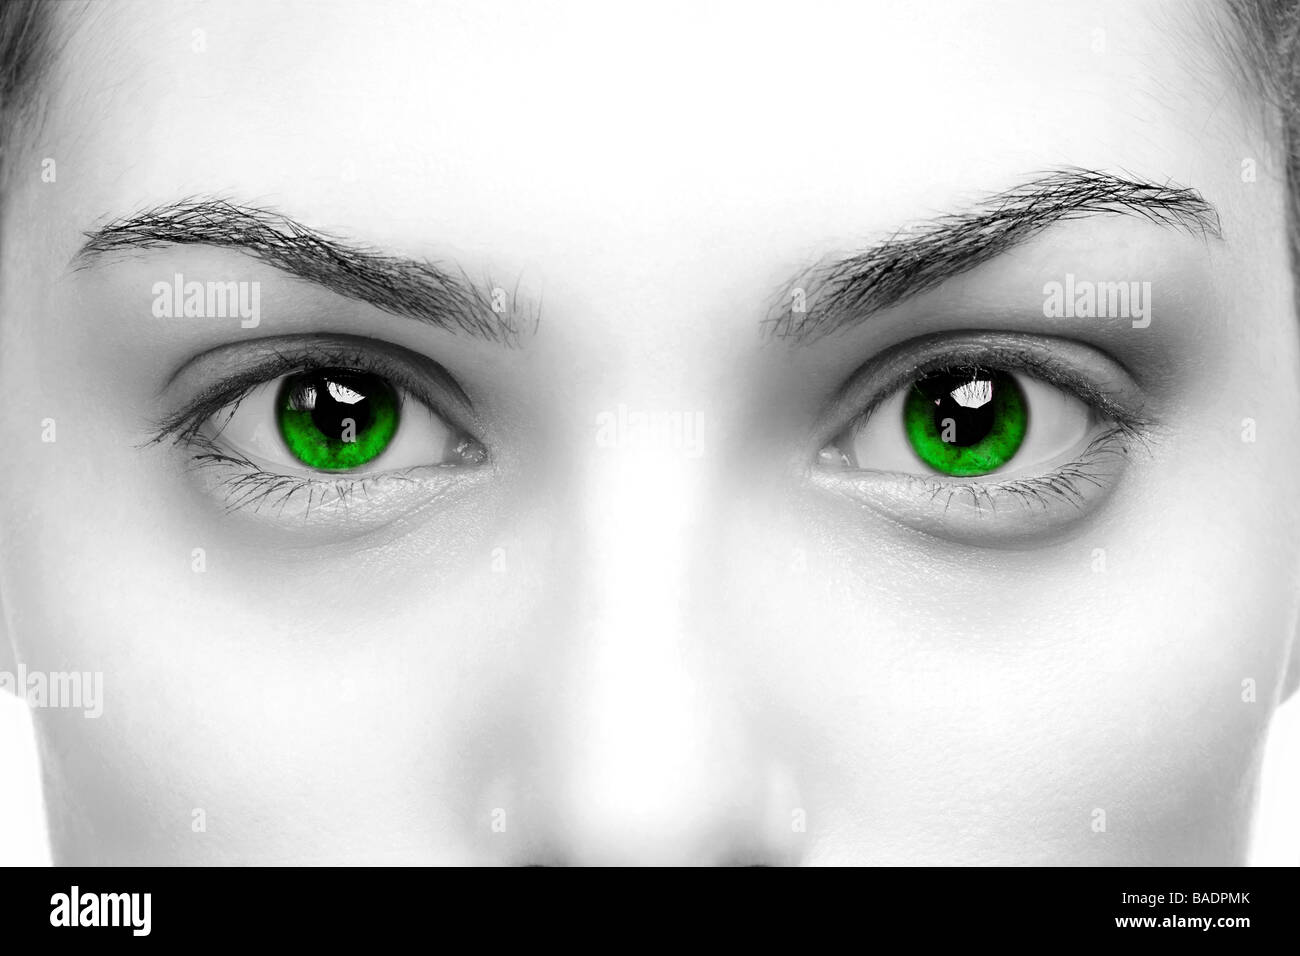 High contrast black white close up of a womans eyes coloured green - Stock Image